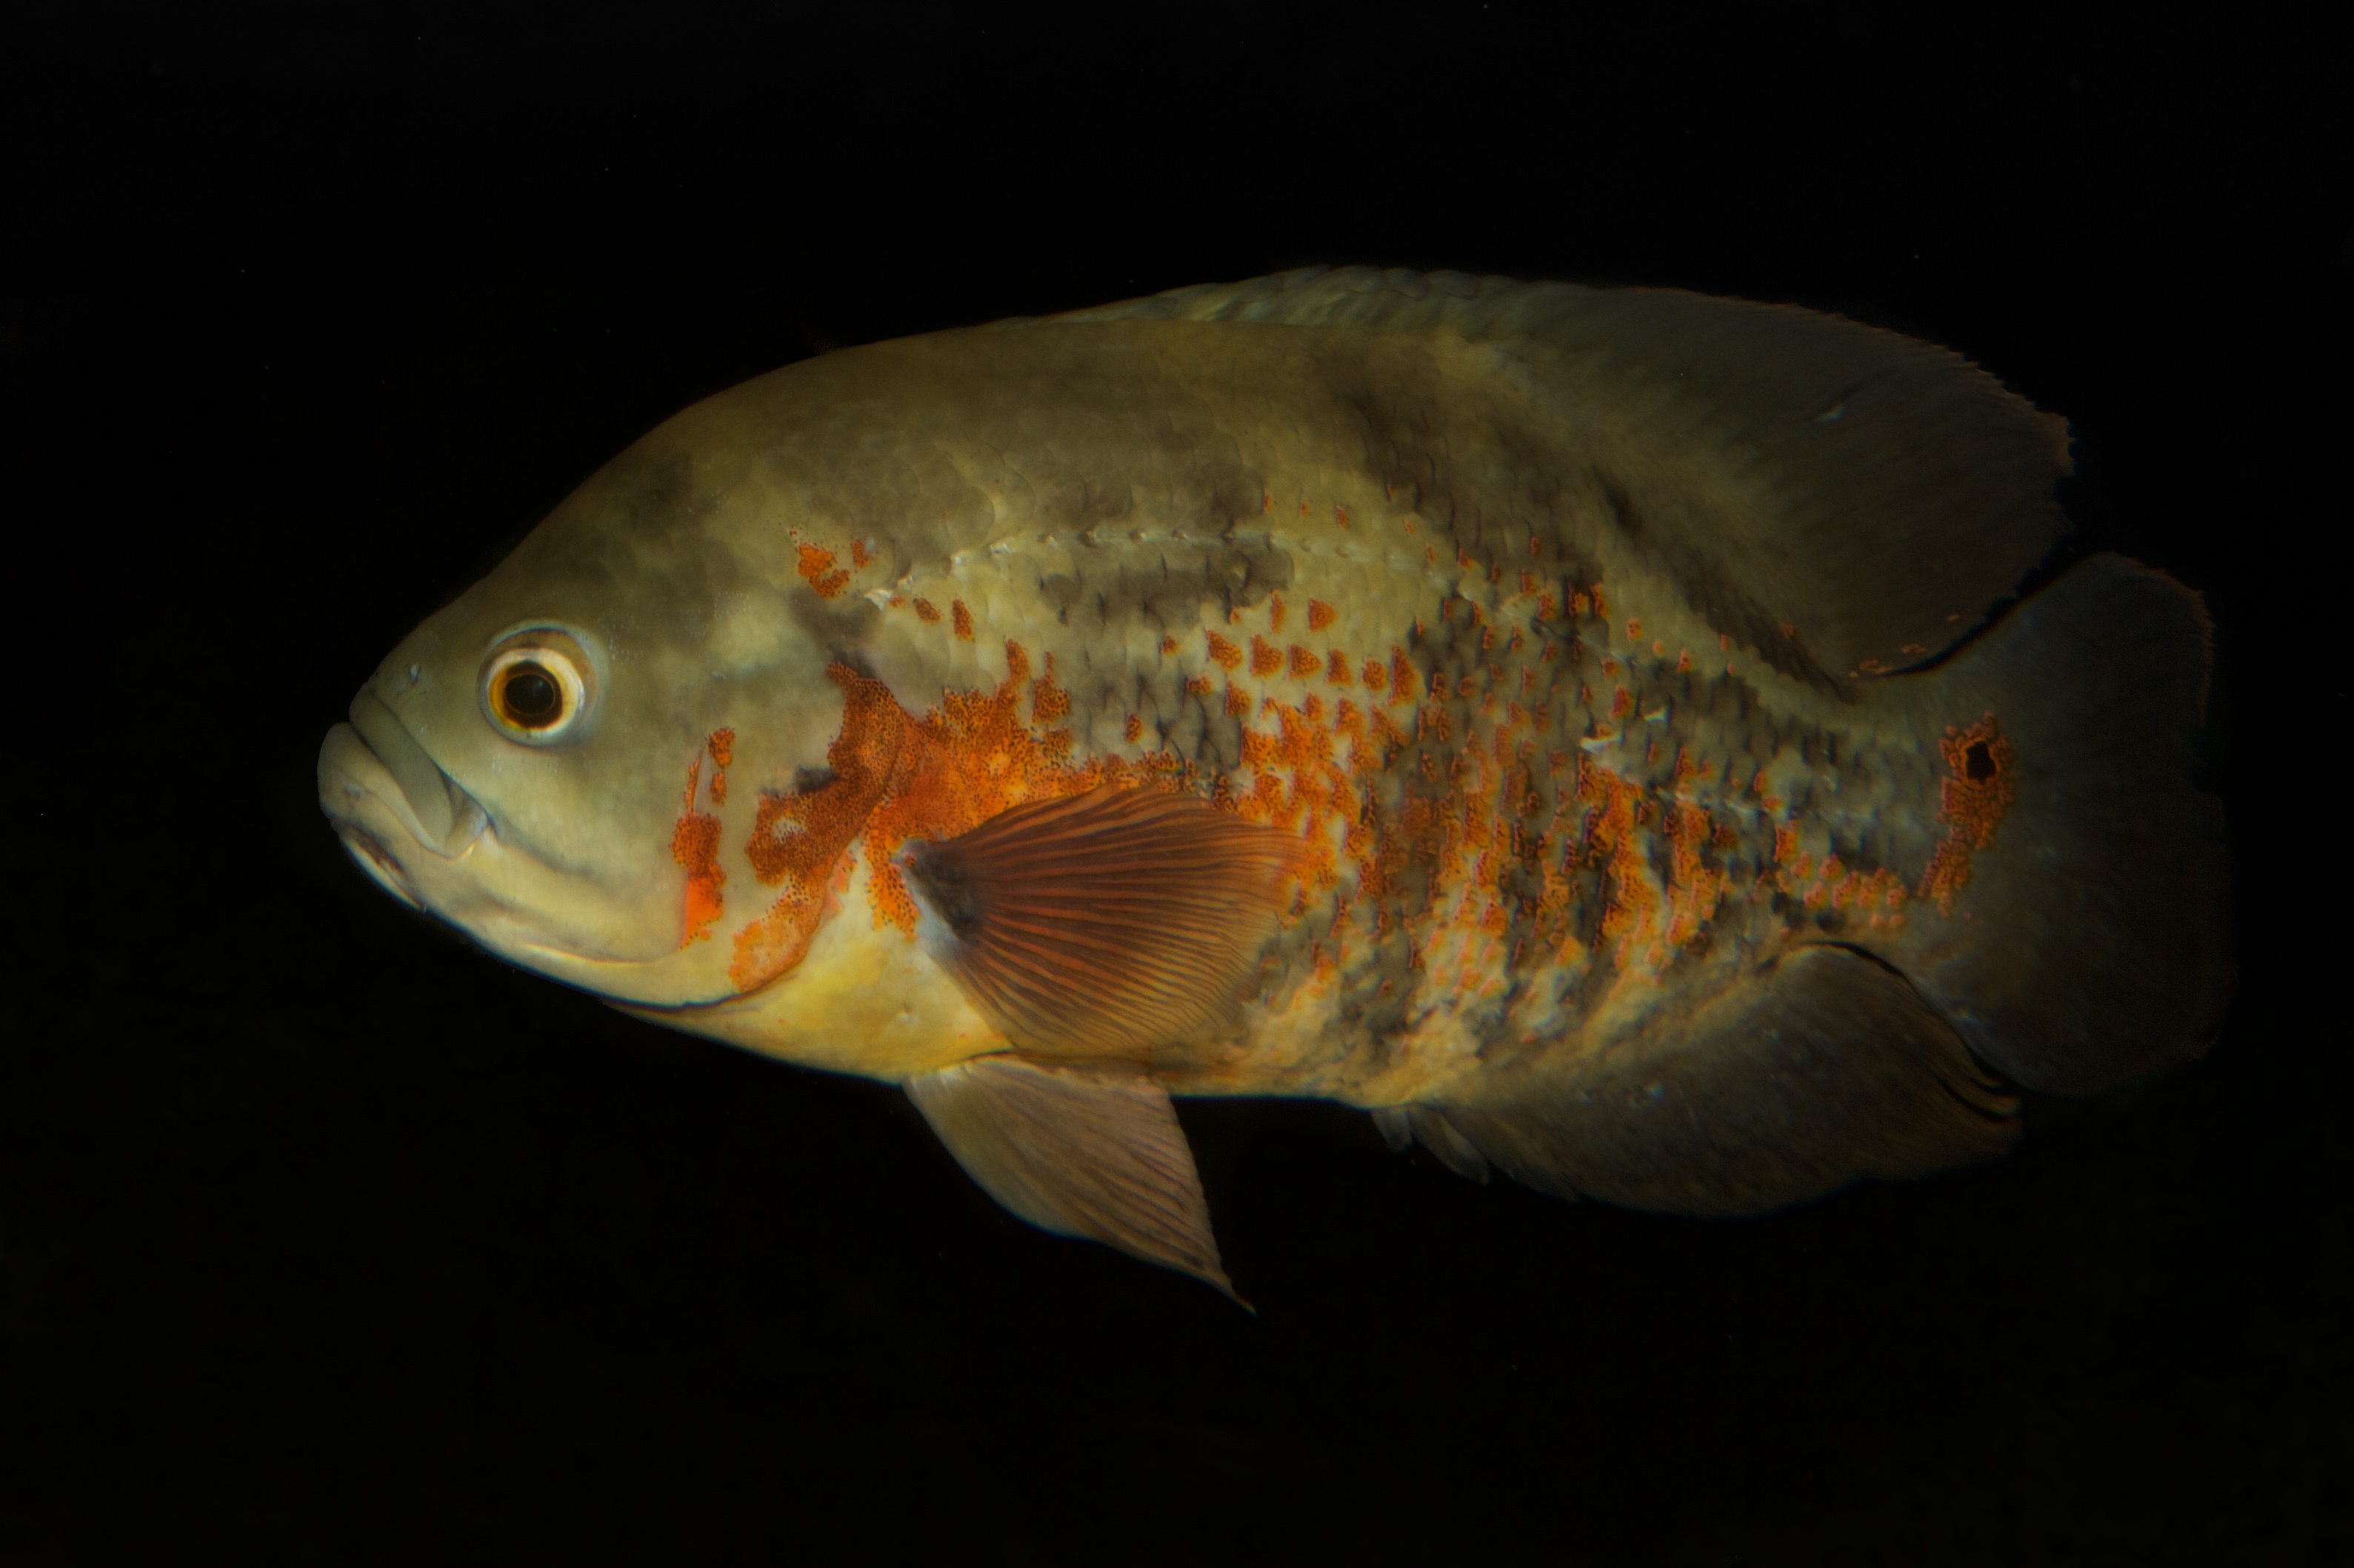 Image of Marble cichlid